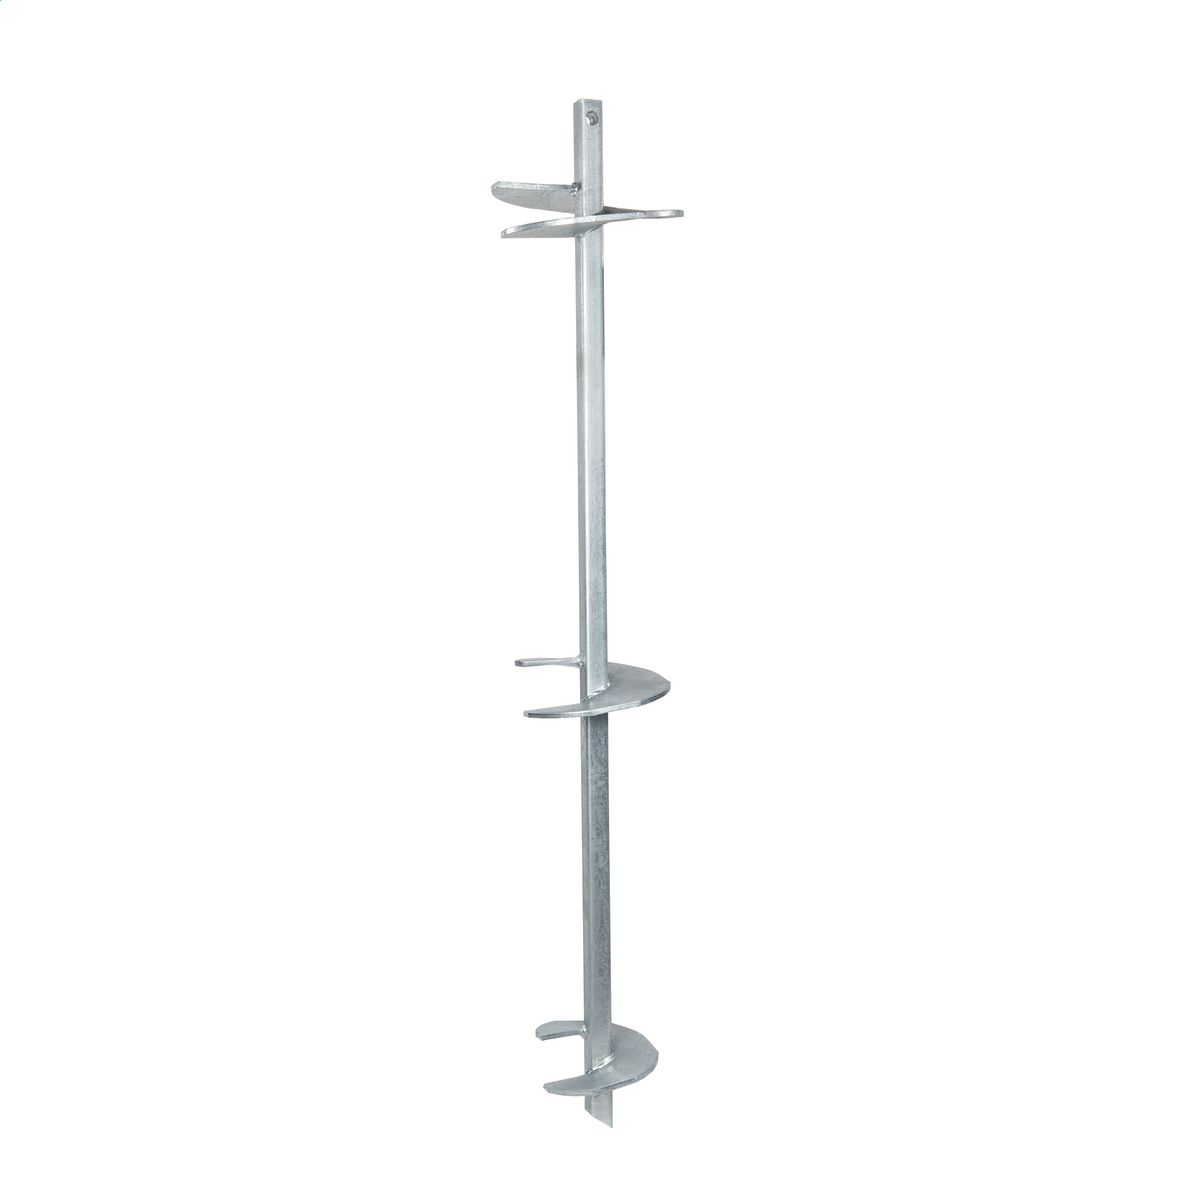 Anchor, Lead, SS150, 8/10/12 X 5ft | C1100386 | Hubbell